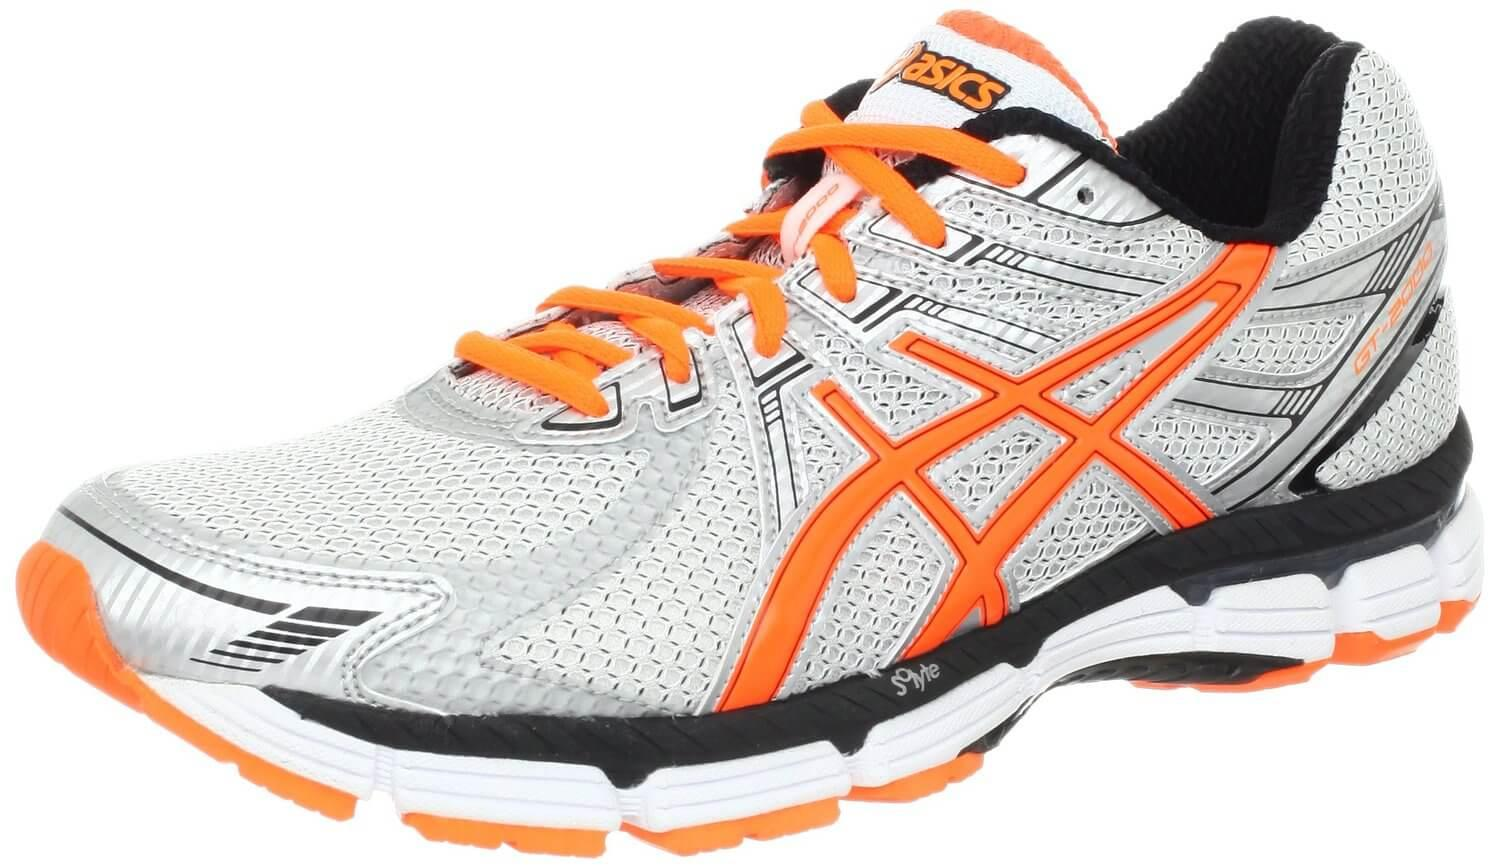 ASICS GT 2000 4 Reviewed - To Buy or Not in Mar 2019  4eade13f5a